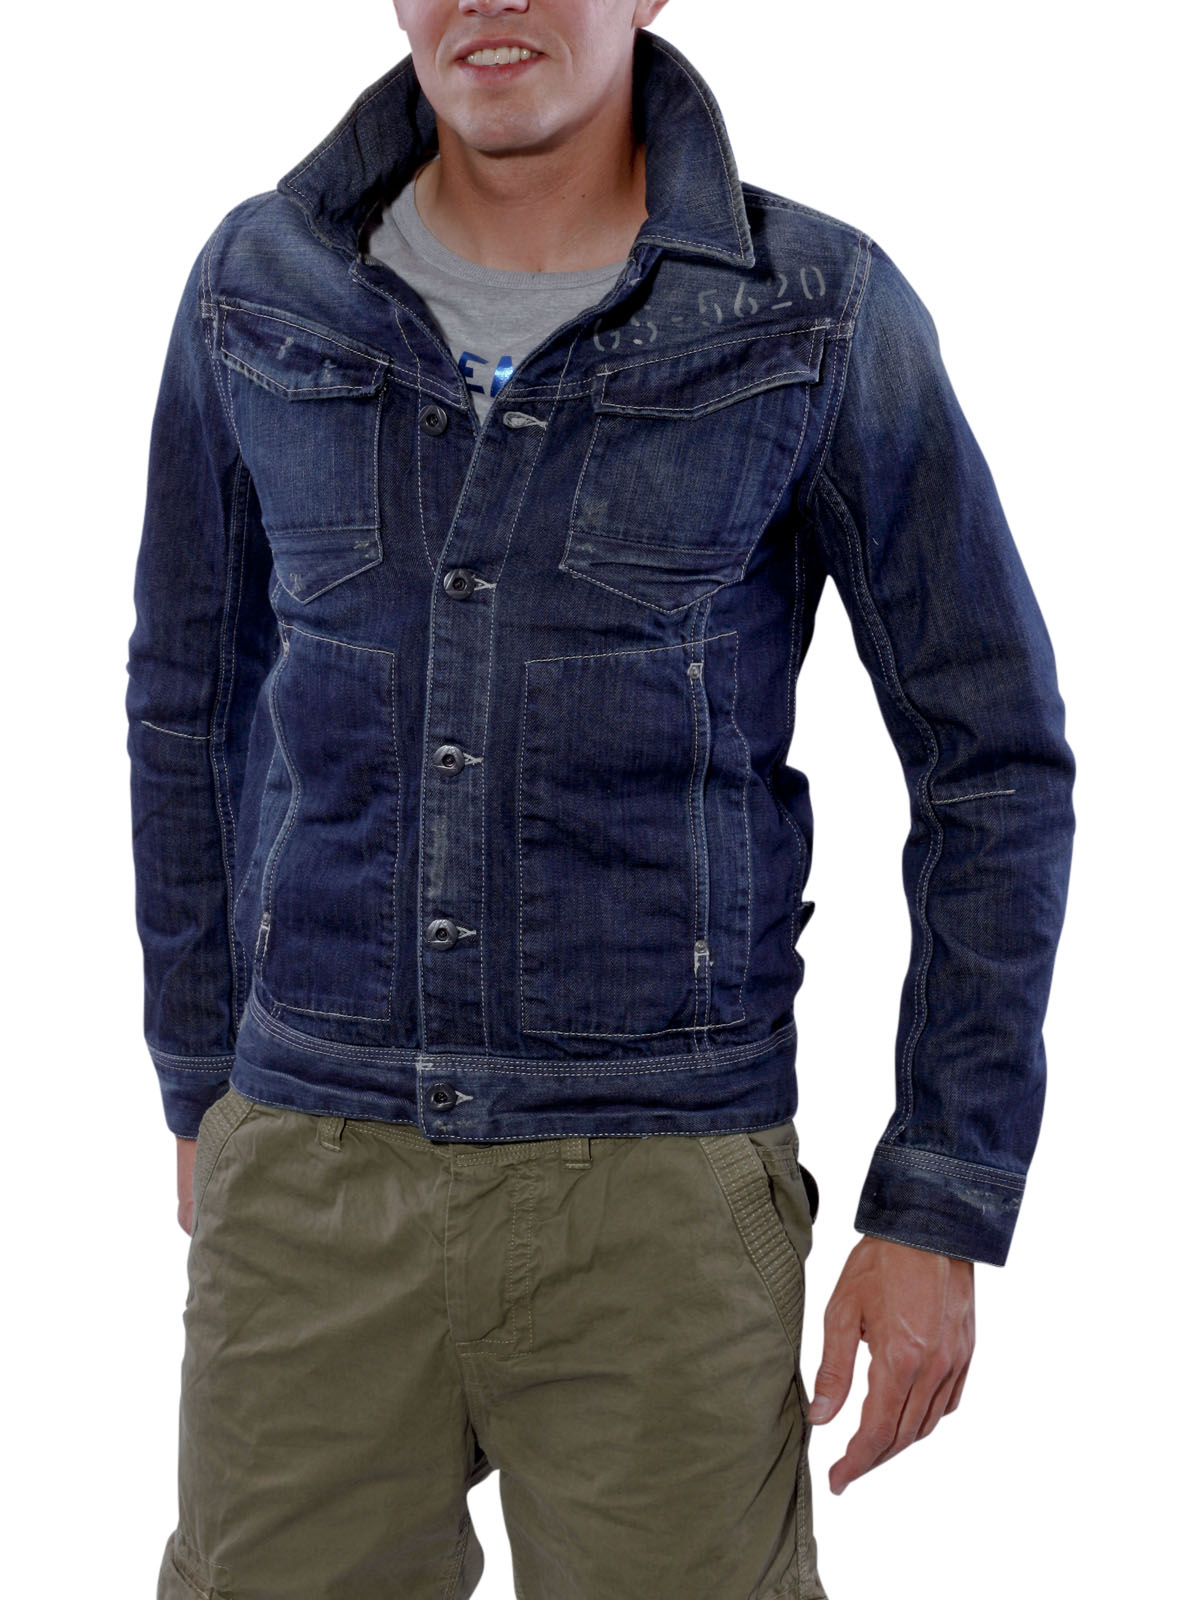 G Star Denim Jacket Sale - Bronze Cardigan